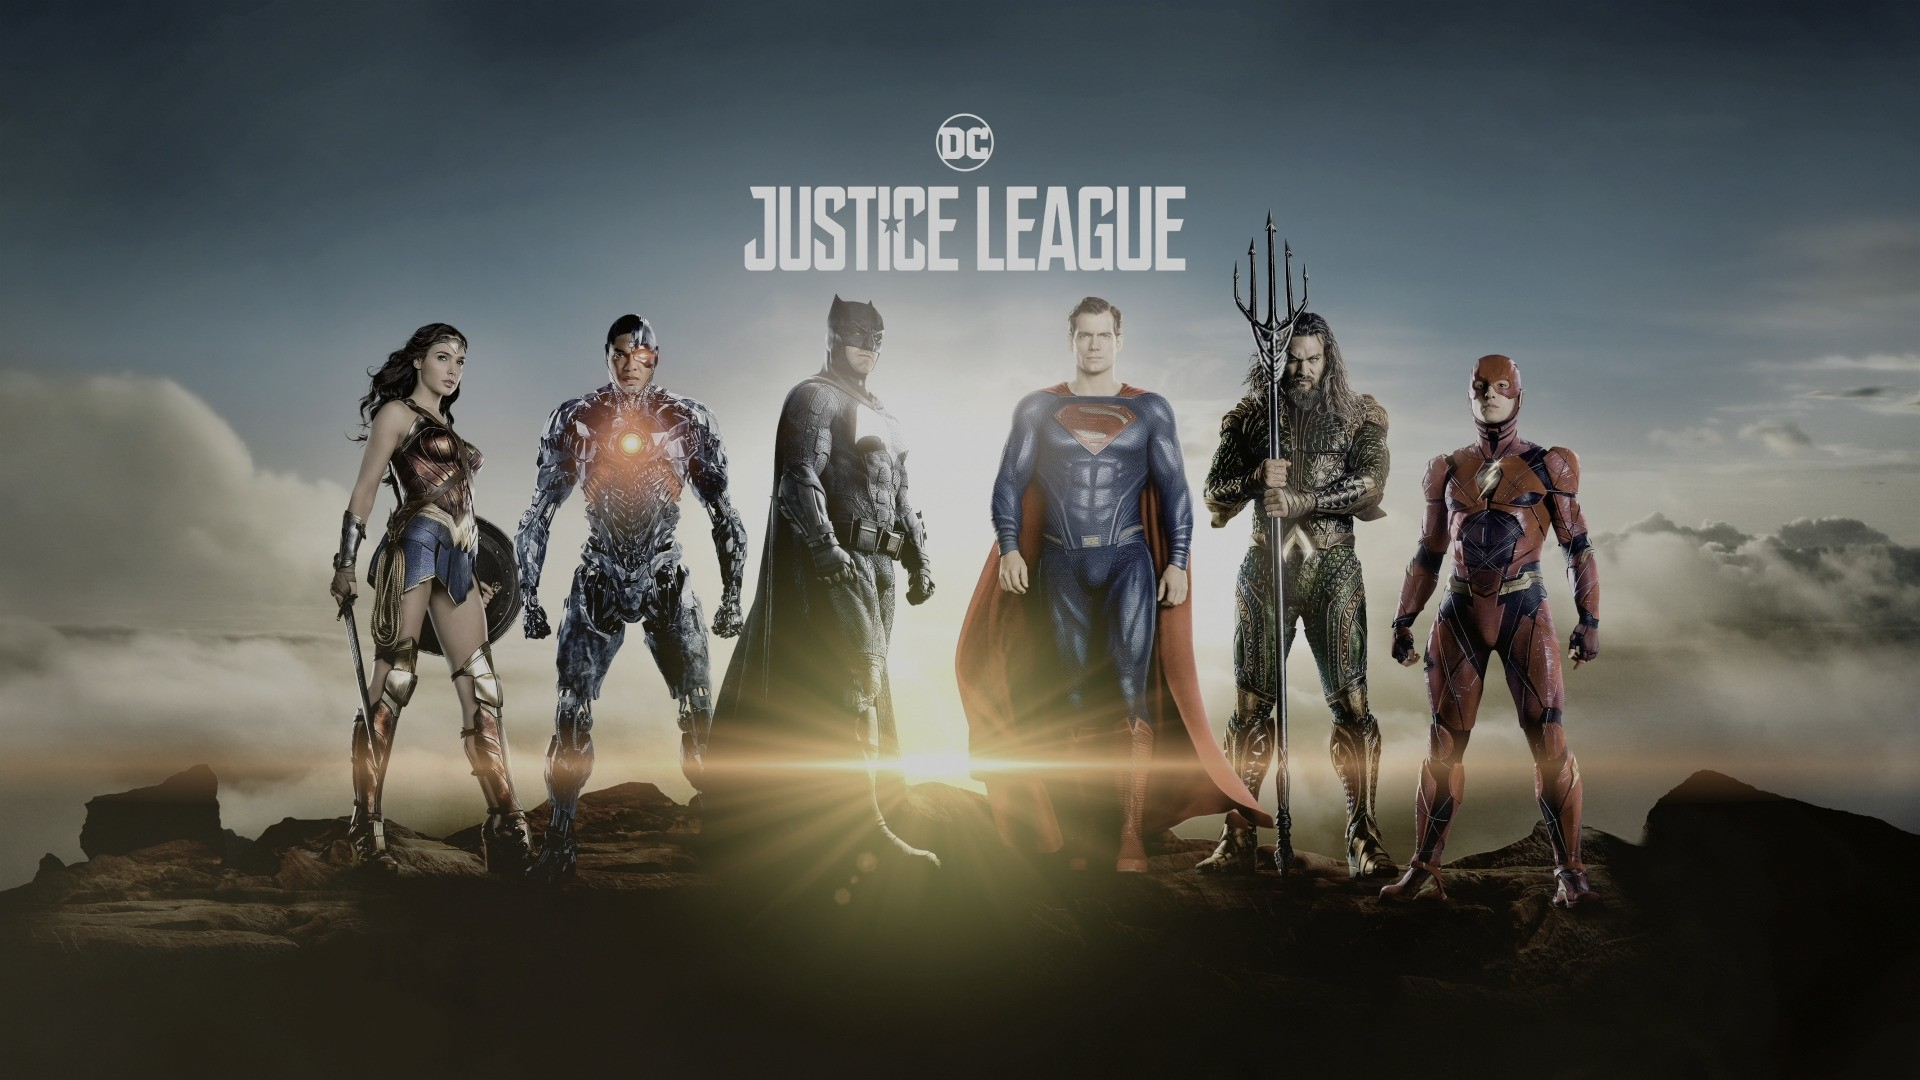 Justice League Poster Background